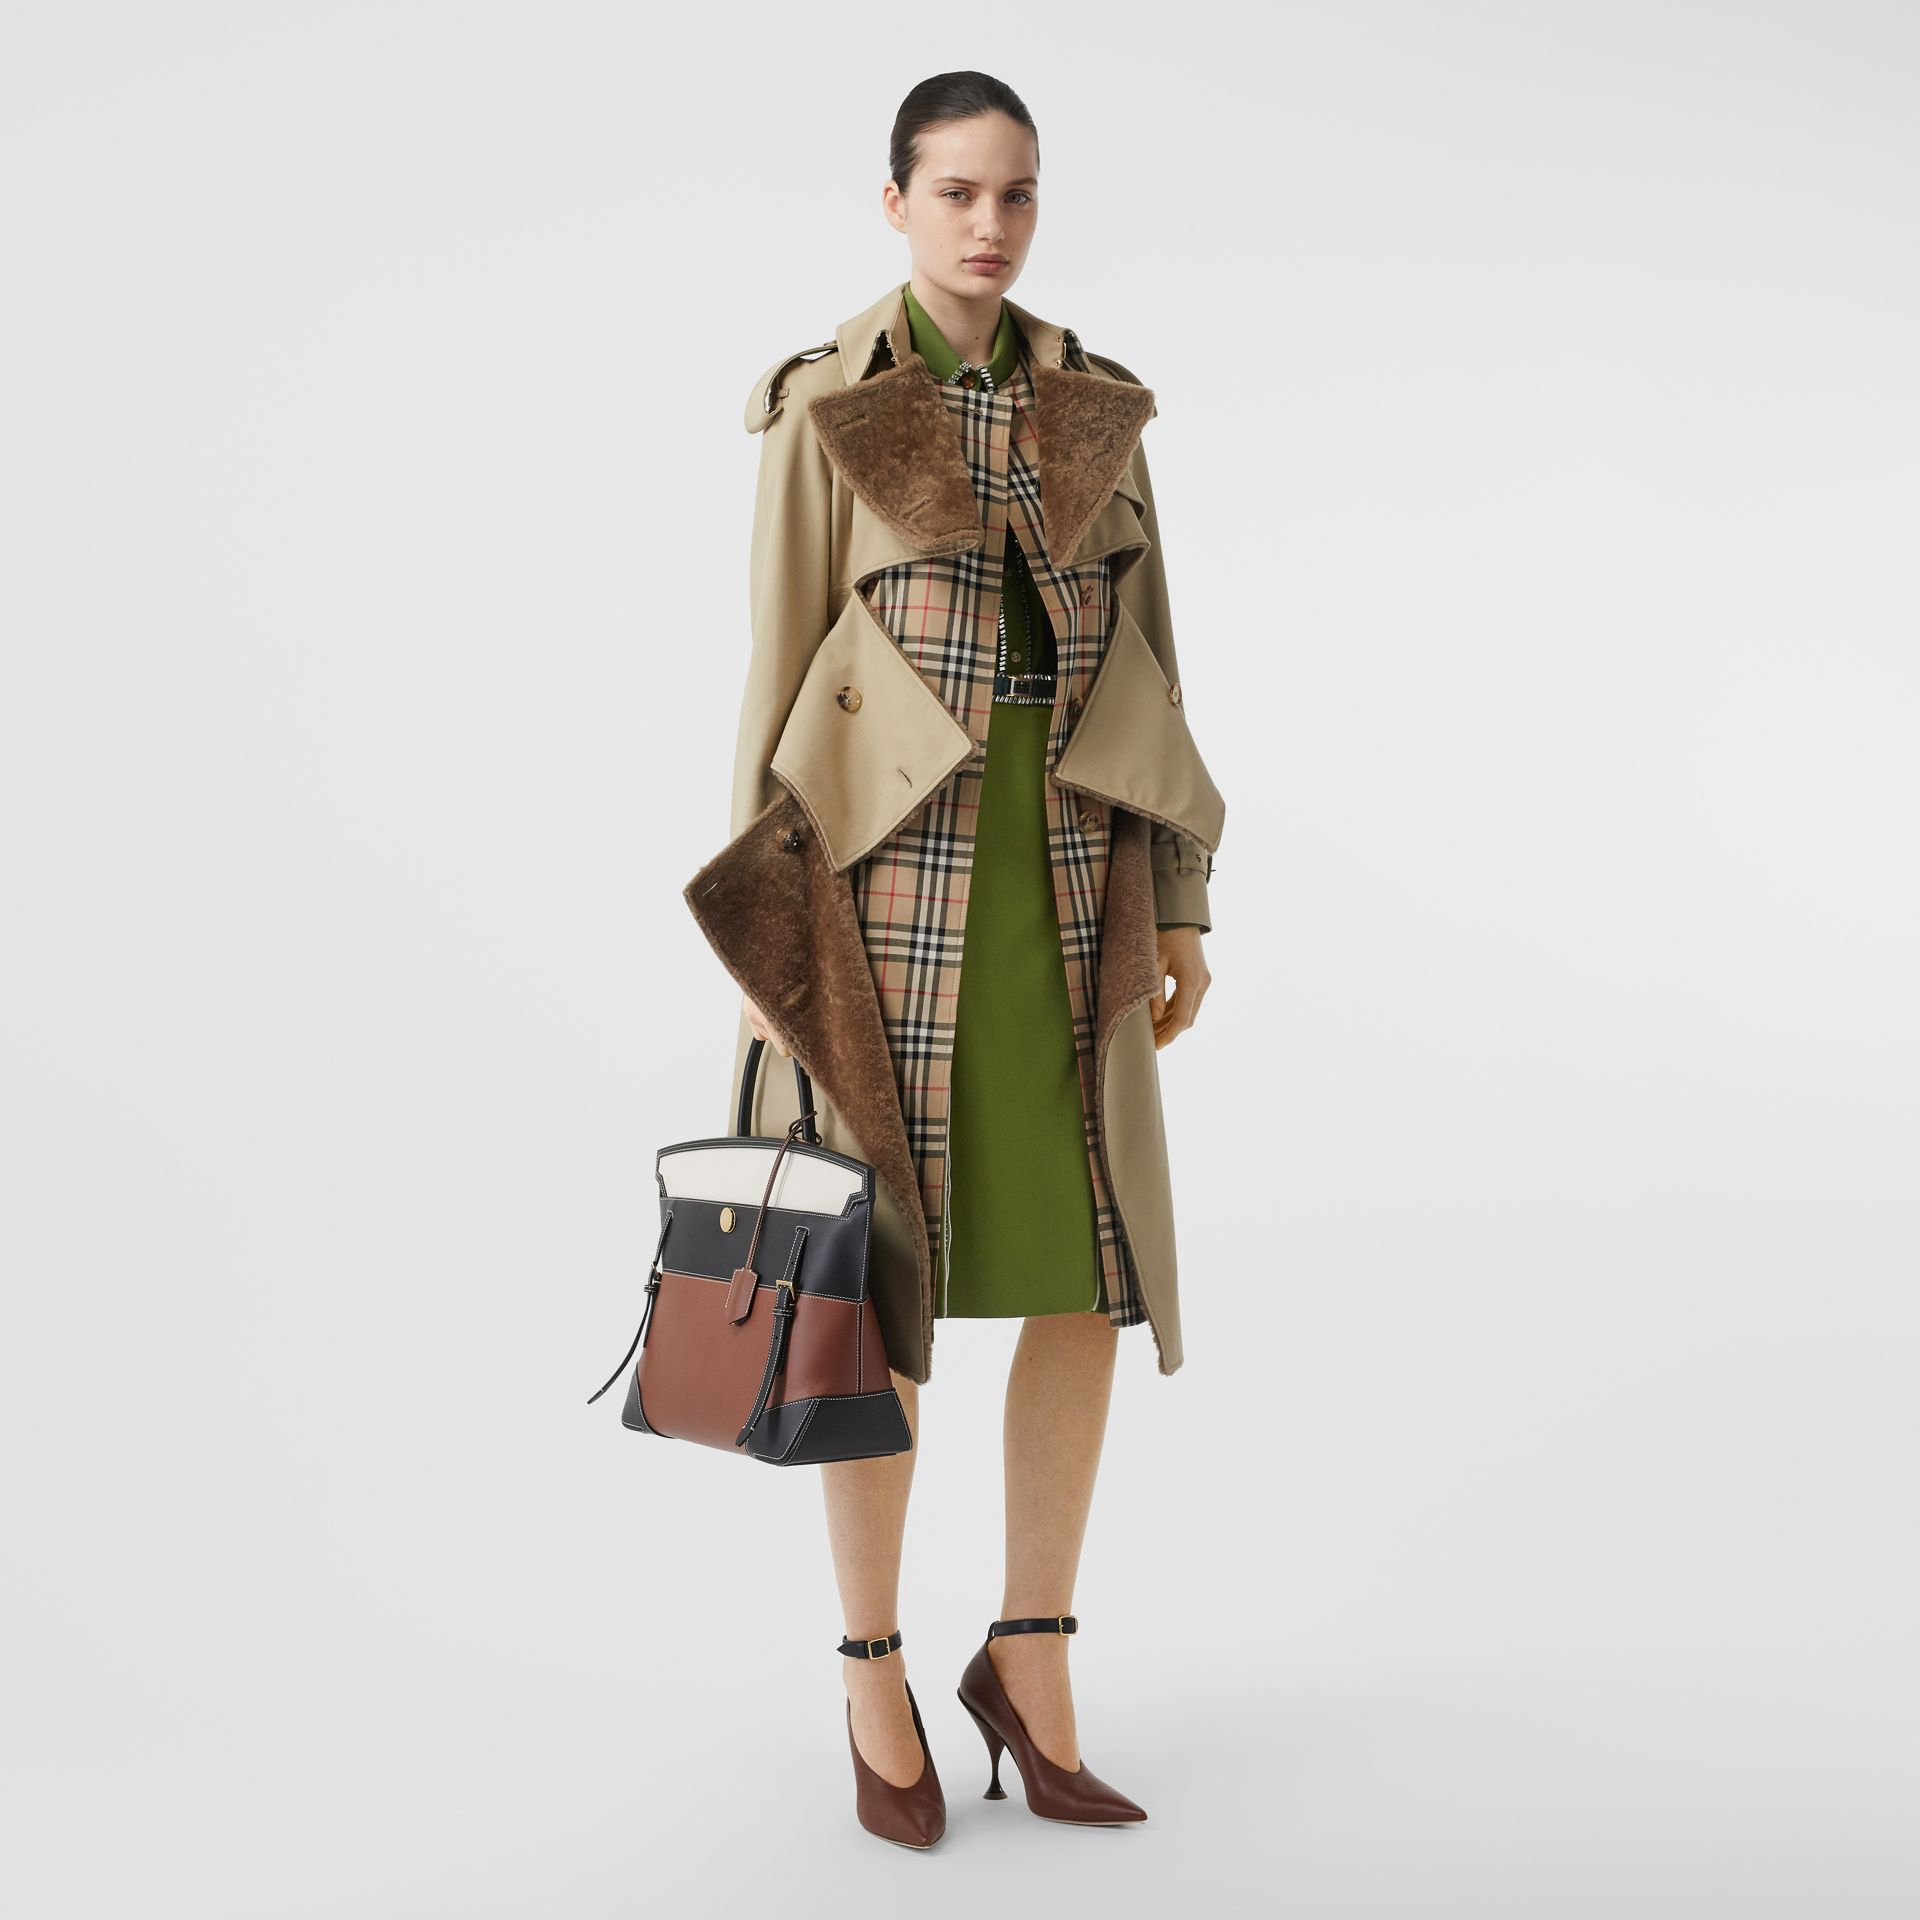 Embellished Silk Oversized Shirt in Cedar Green - Women | Burberry United States - gallery image 4